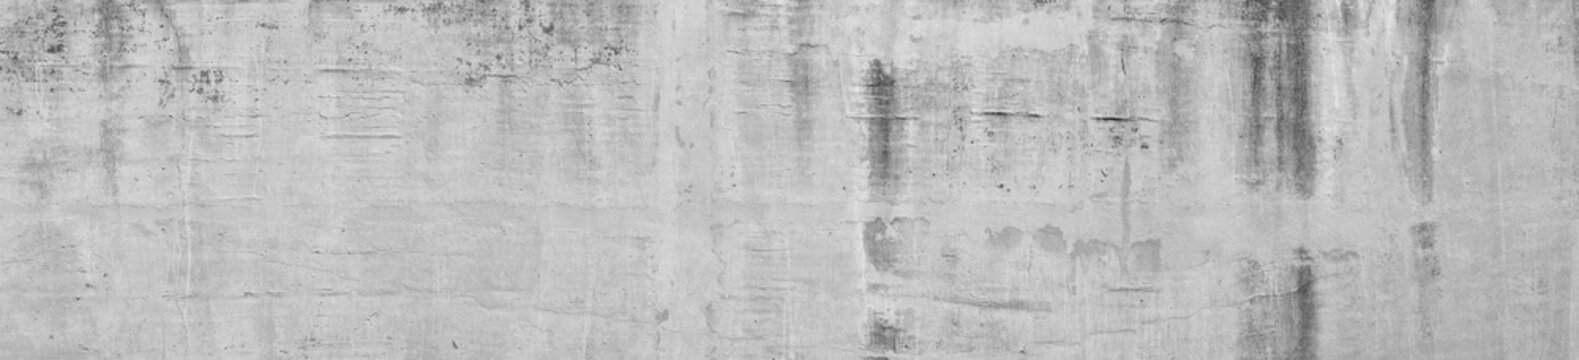 Wall concrete background. Old cement texture cracked, White, Grey vintage wallpaper abstract grunge background